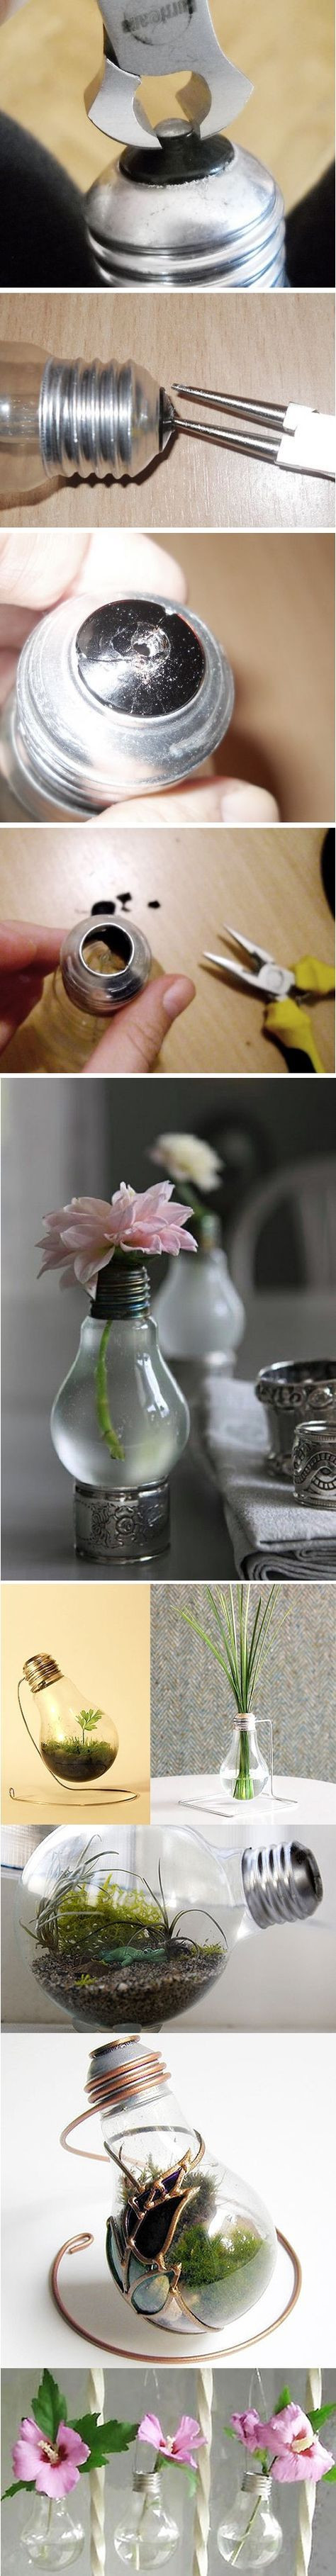 vidrios san miguel recycled glass vase of 40 best diy get creative images on pinterest bricolage good ideas with diy project recycled light bulbs by michelle winter cute gift idea for the office